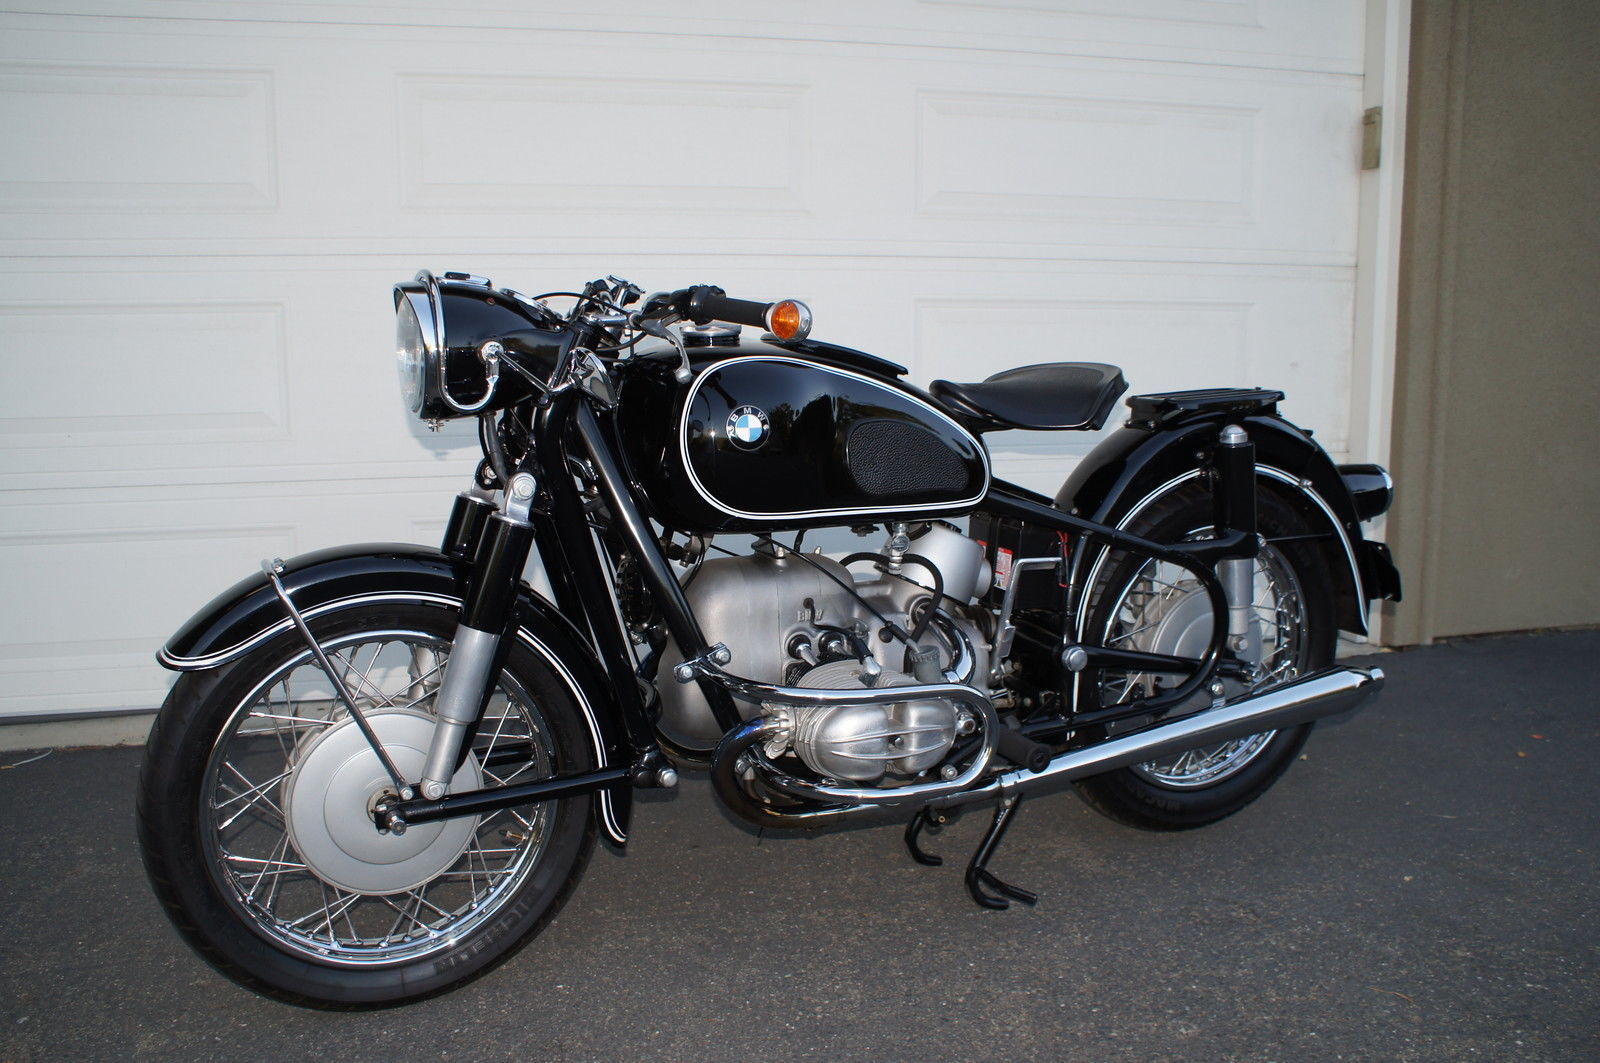 bmw r69s - 1966 - restored classic motorcycles at bikes restored